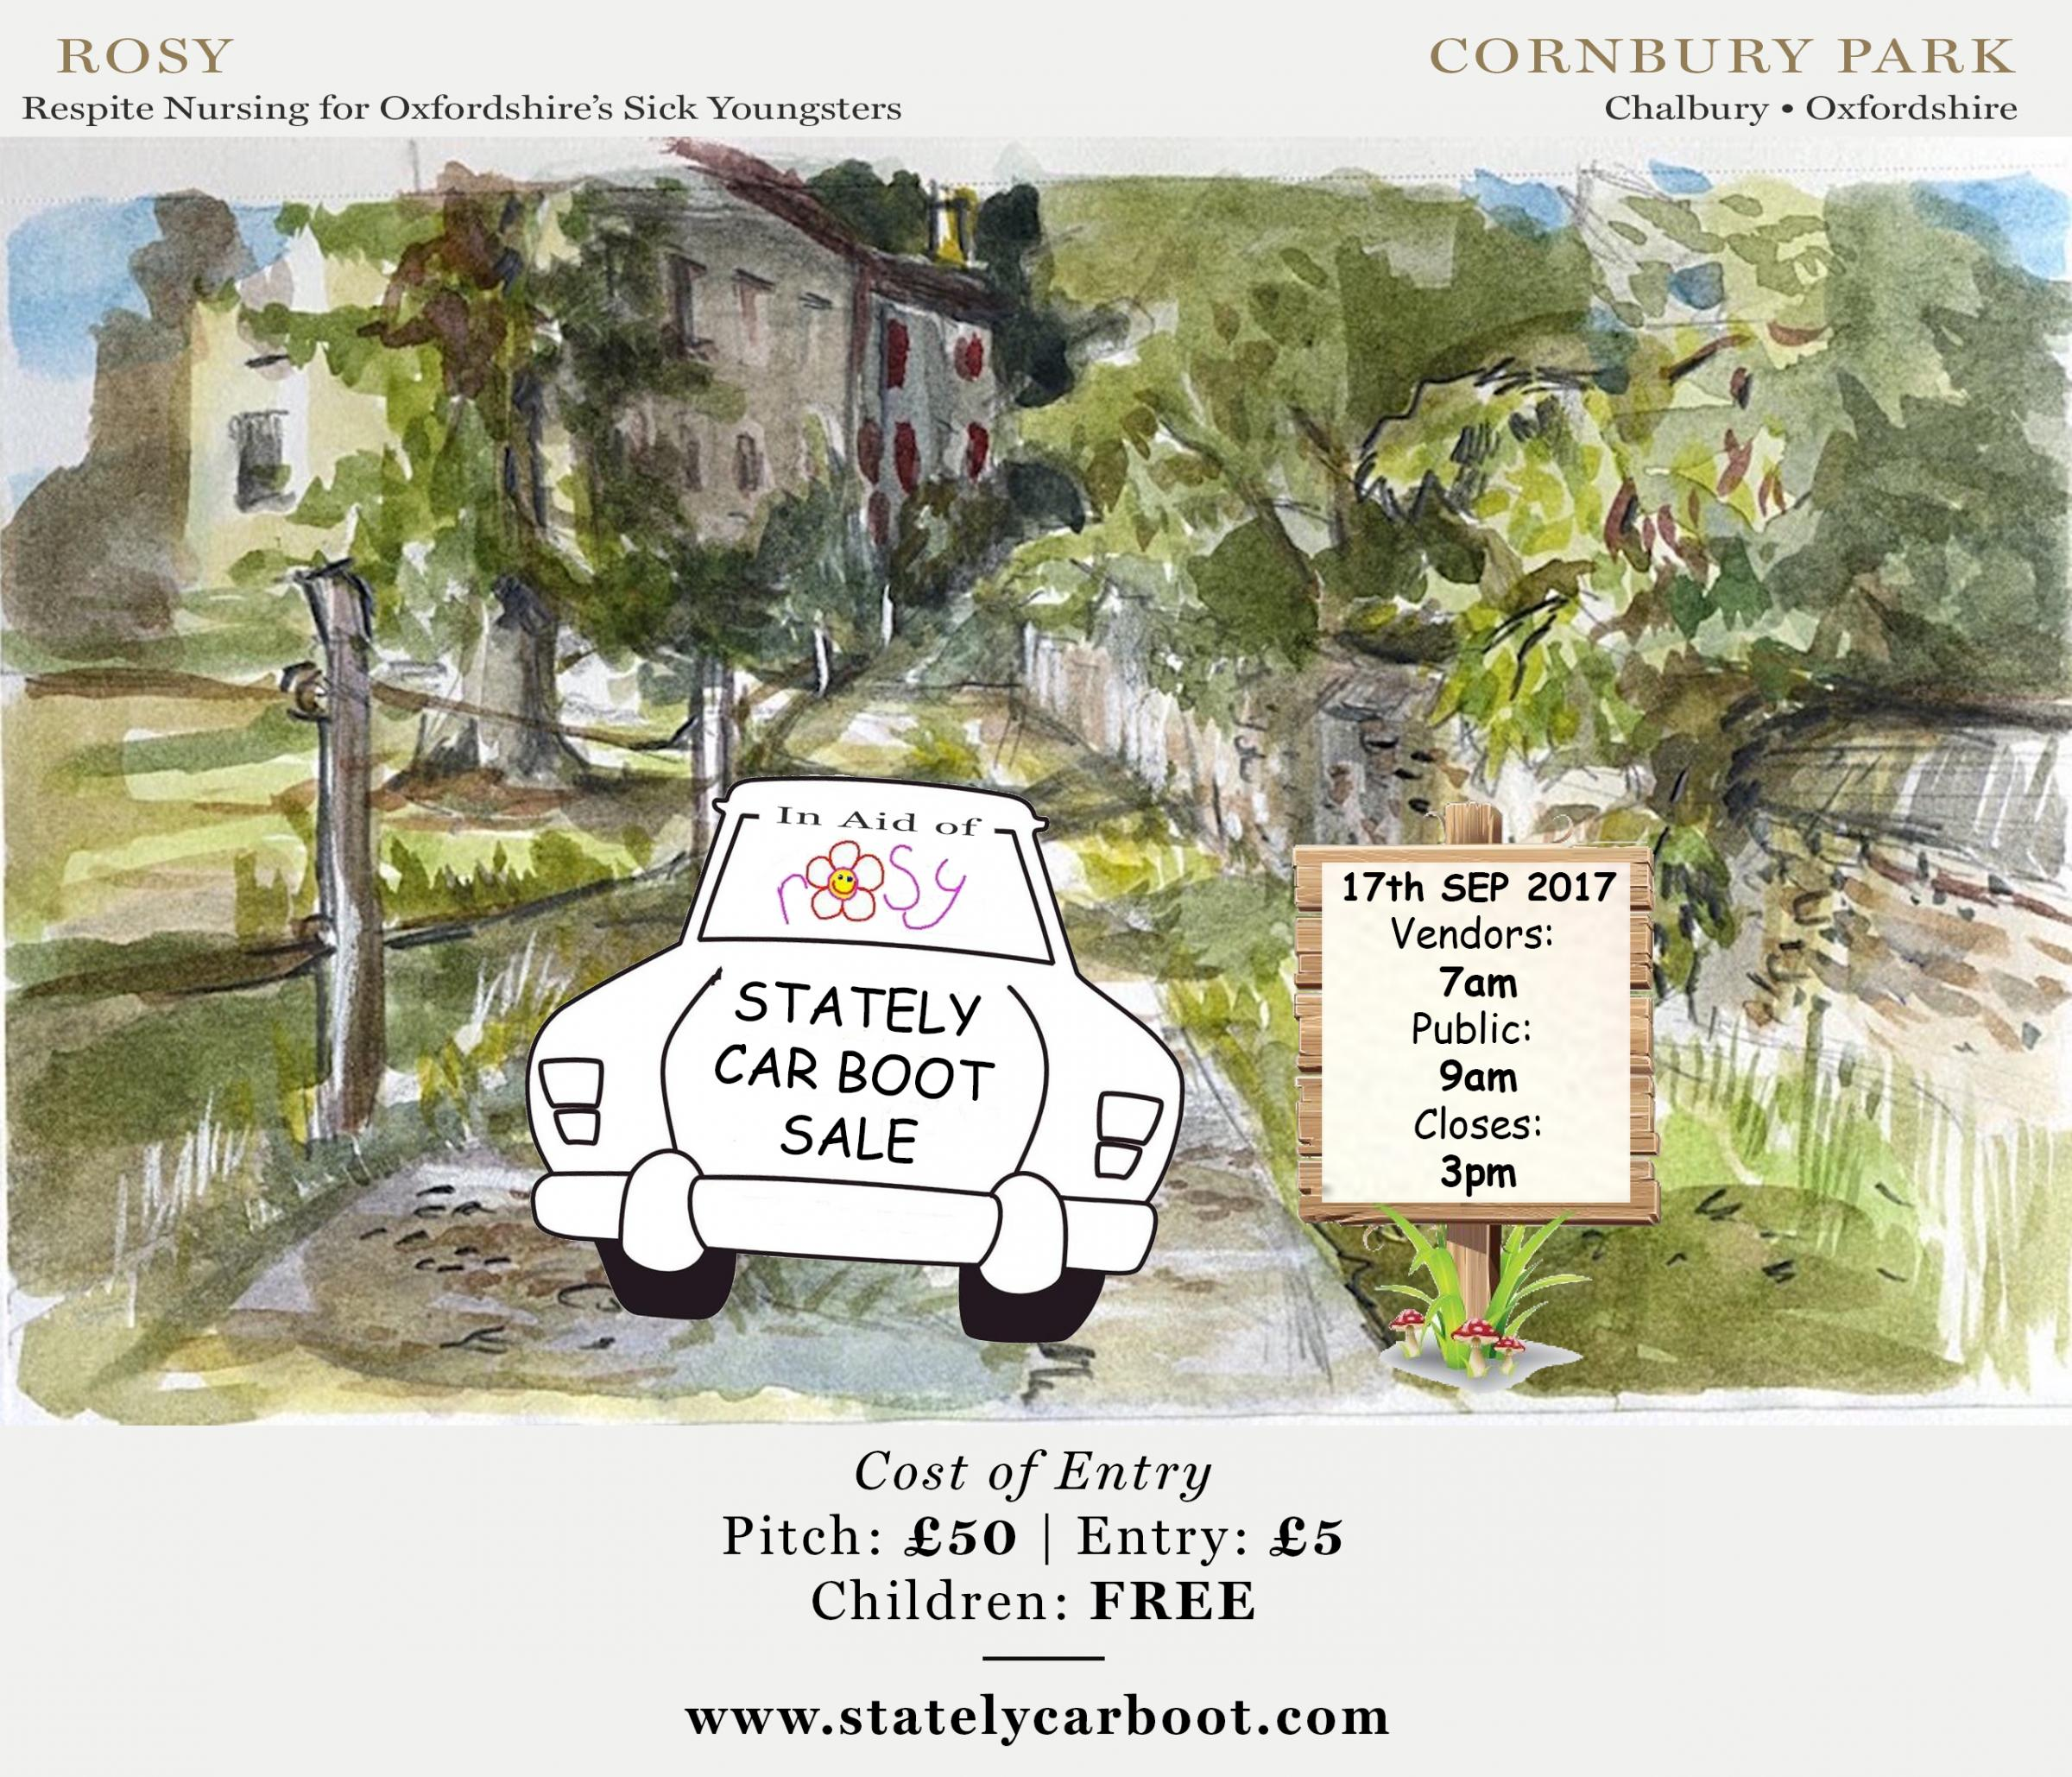 The Stately Car Boot Sale